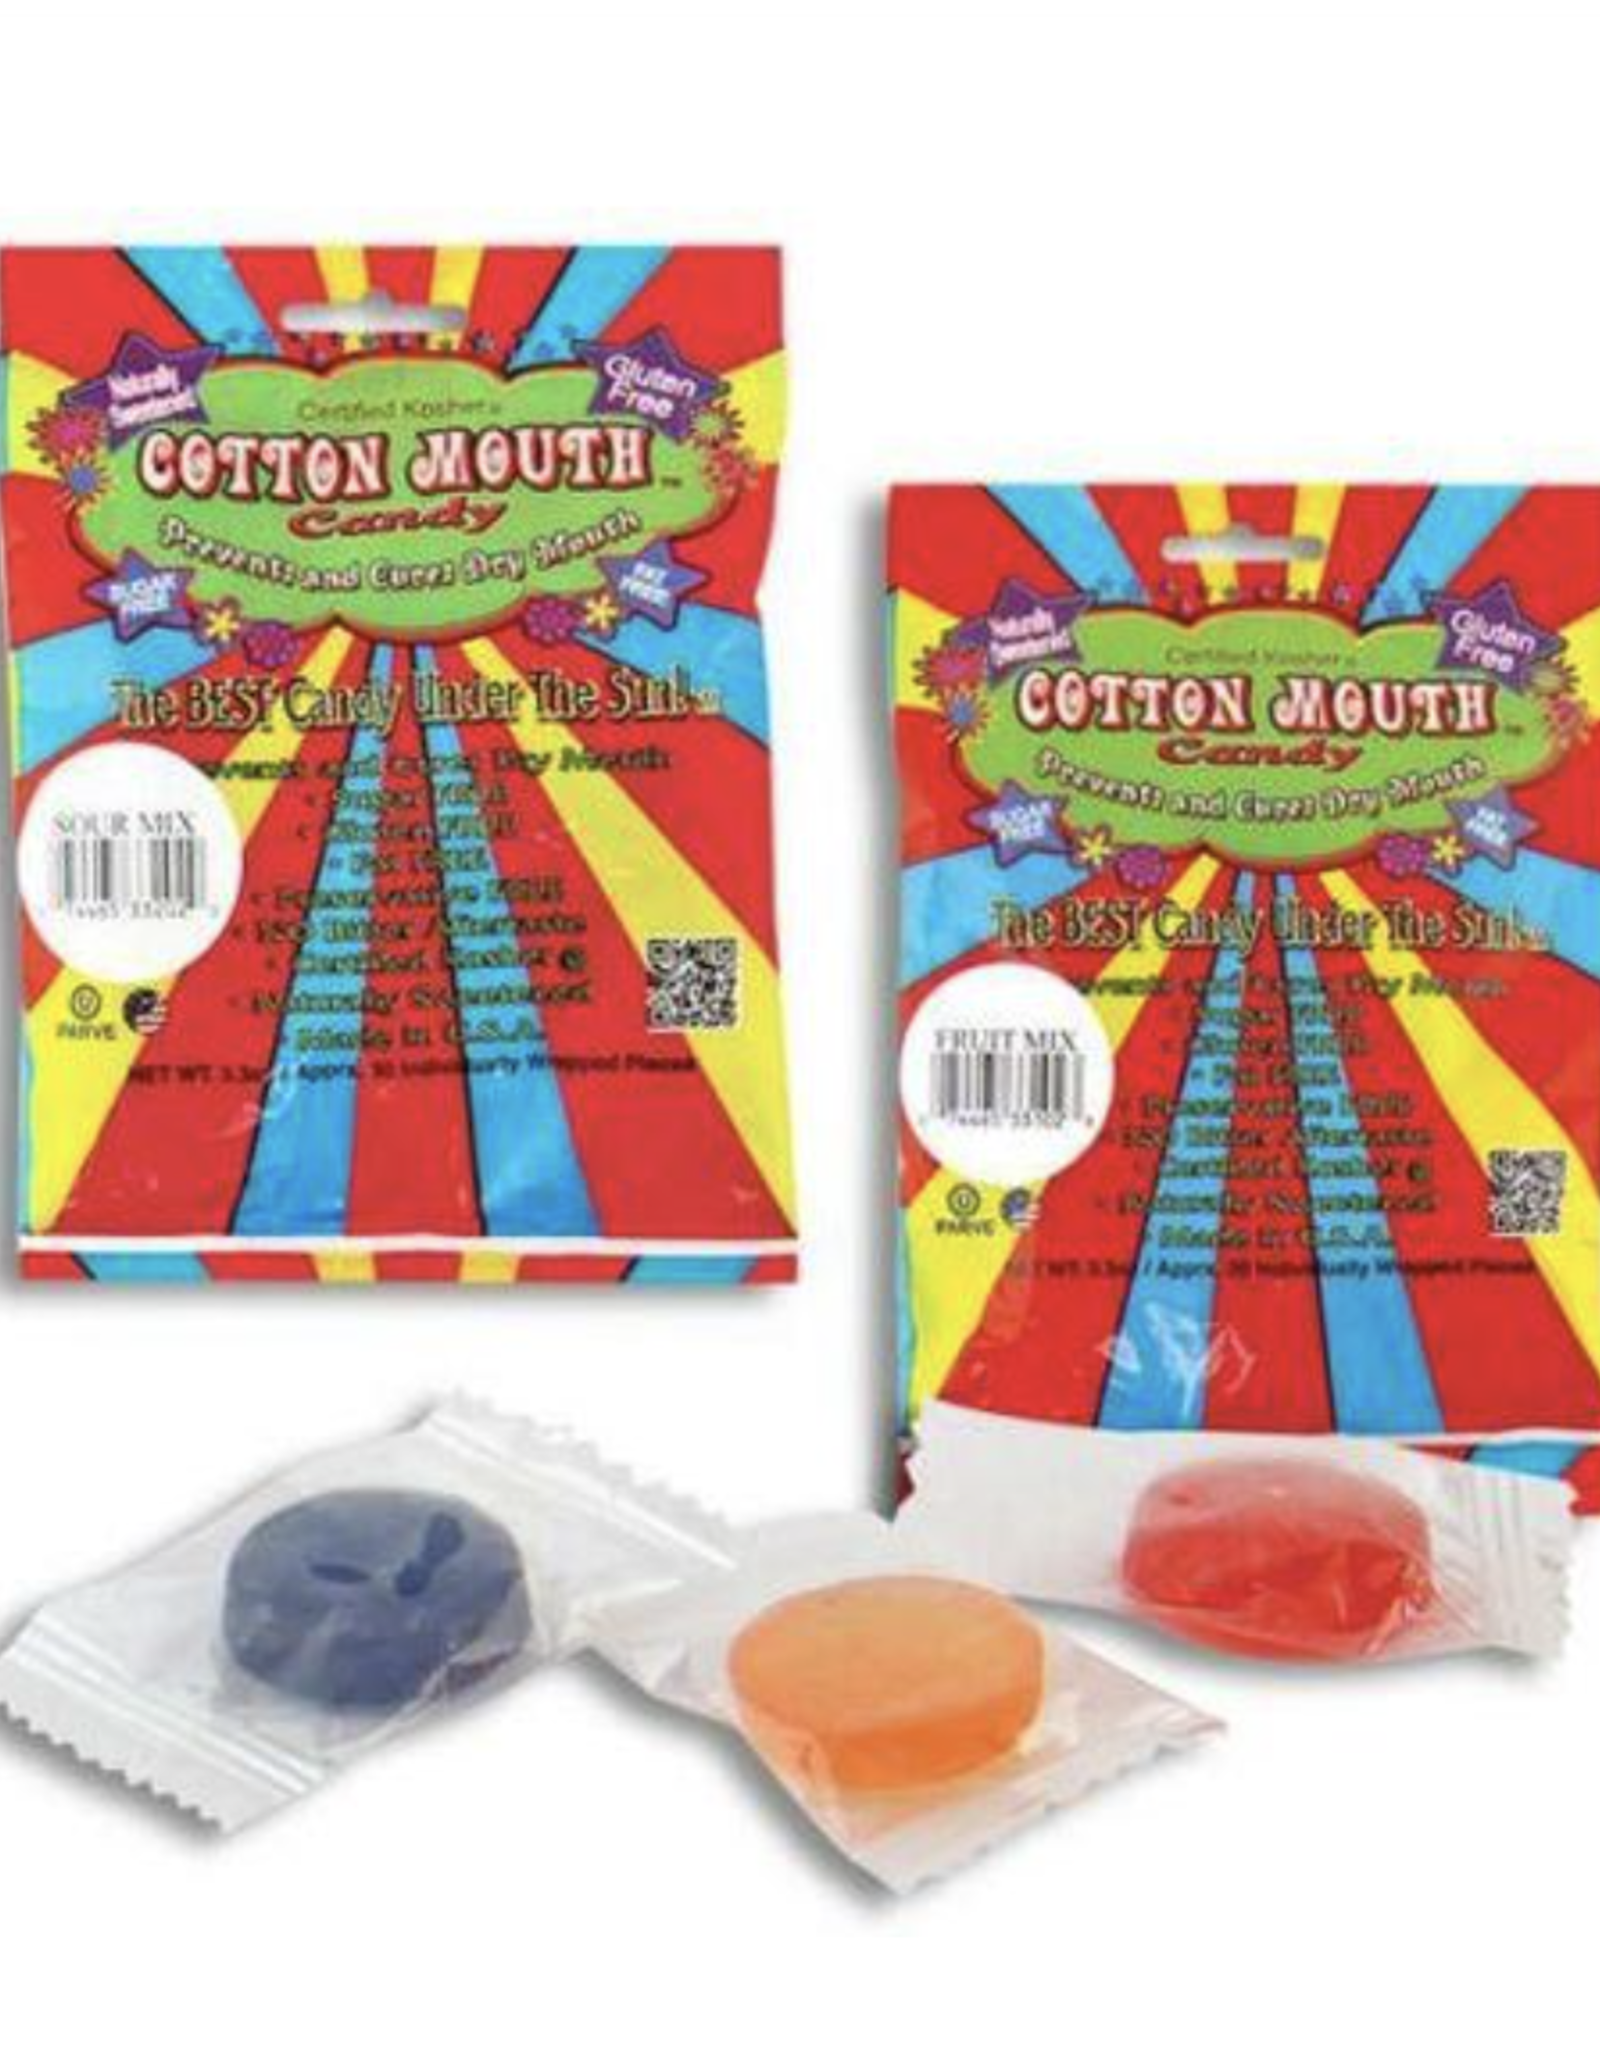 Cotton Mouth Candy - Fruit or Sour Mix